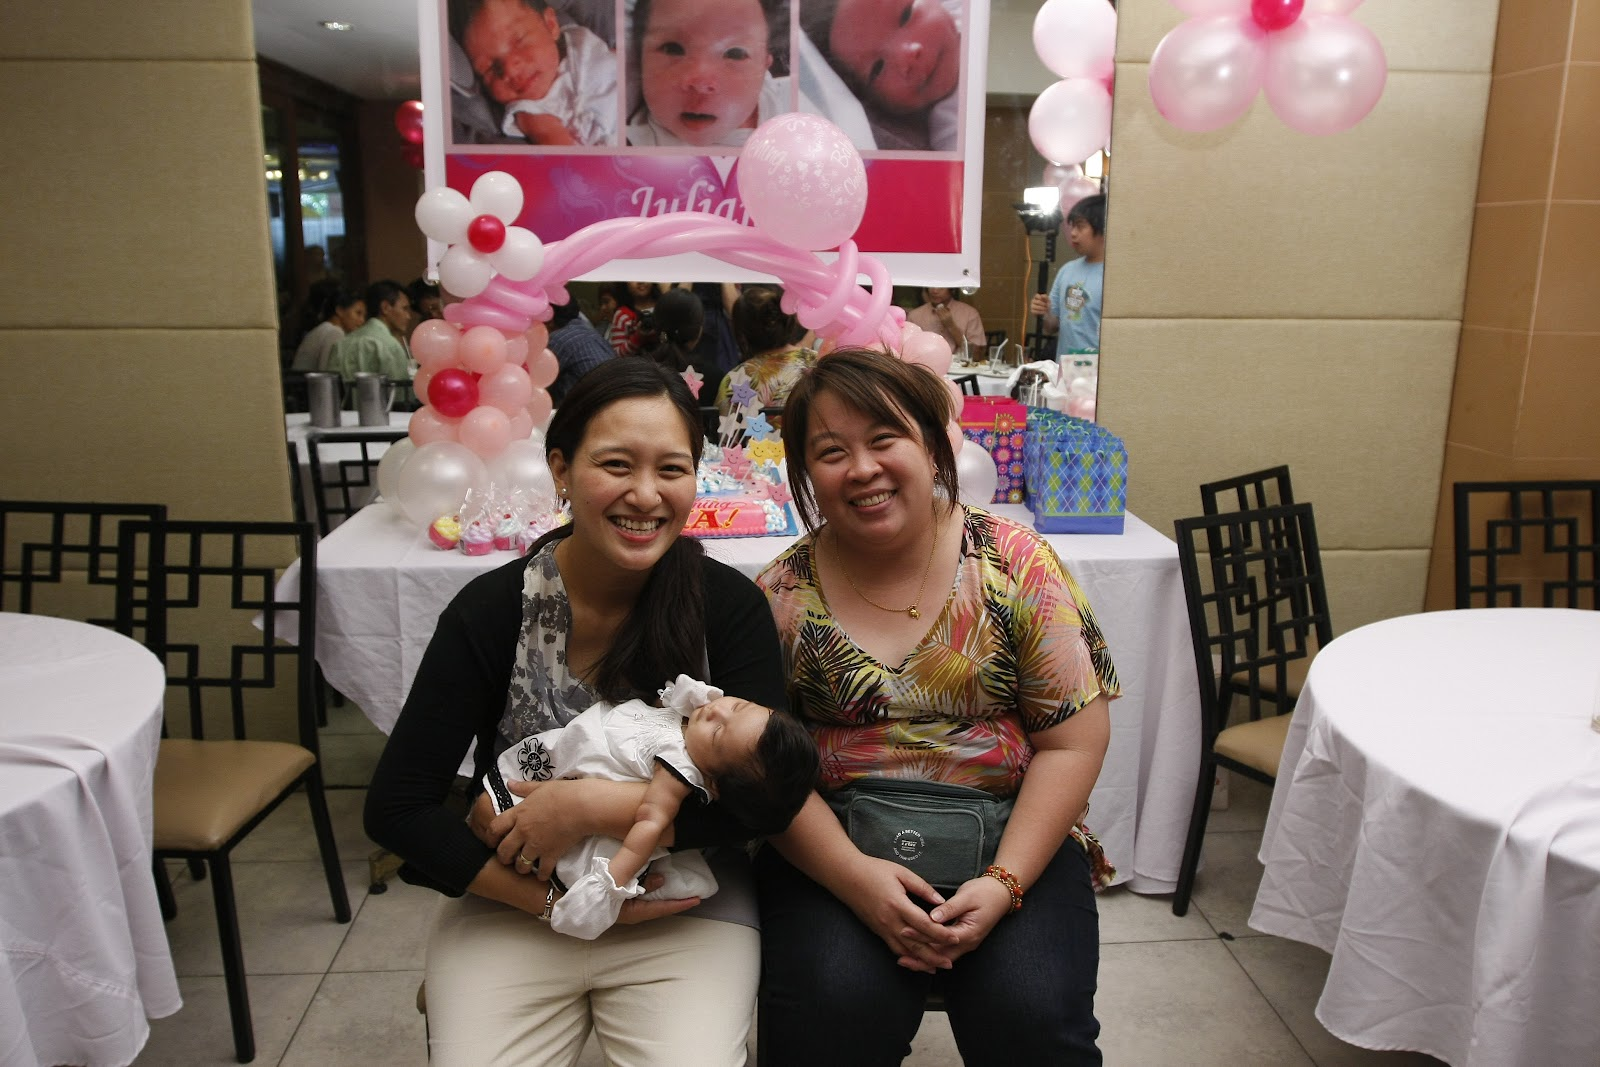 Preparing for a big event. What do you need for christening girls